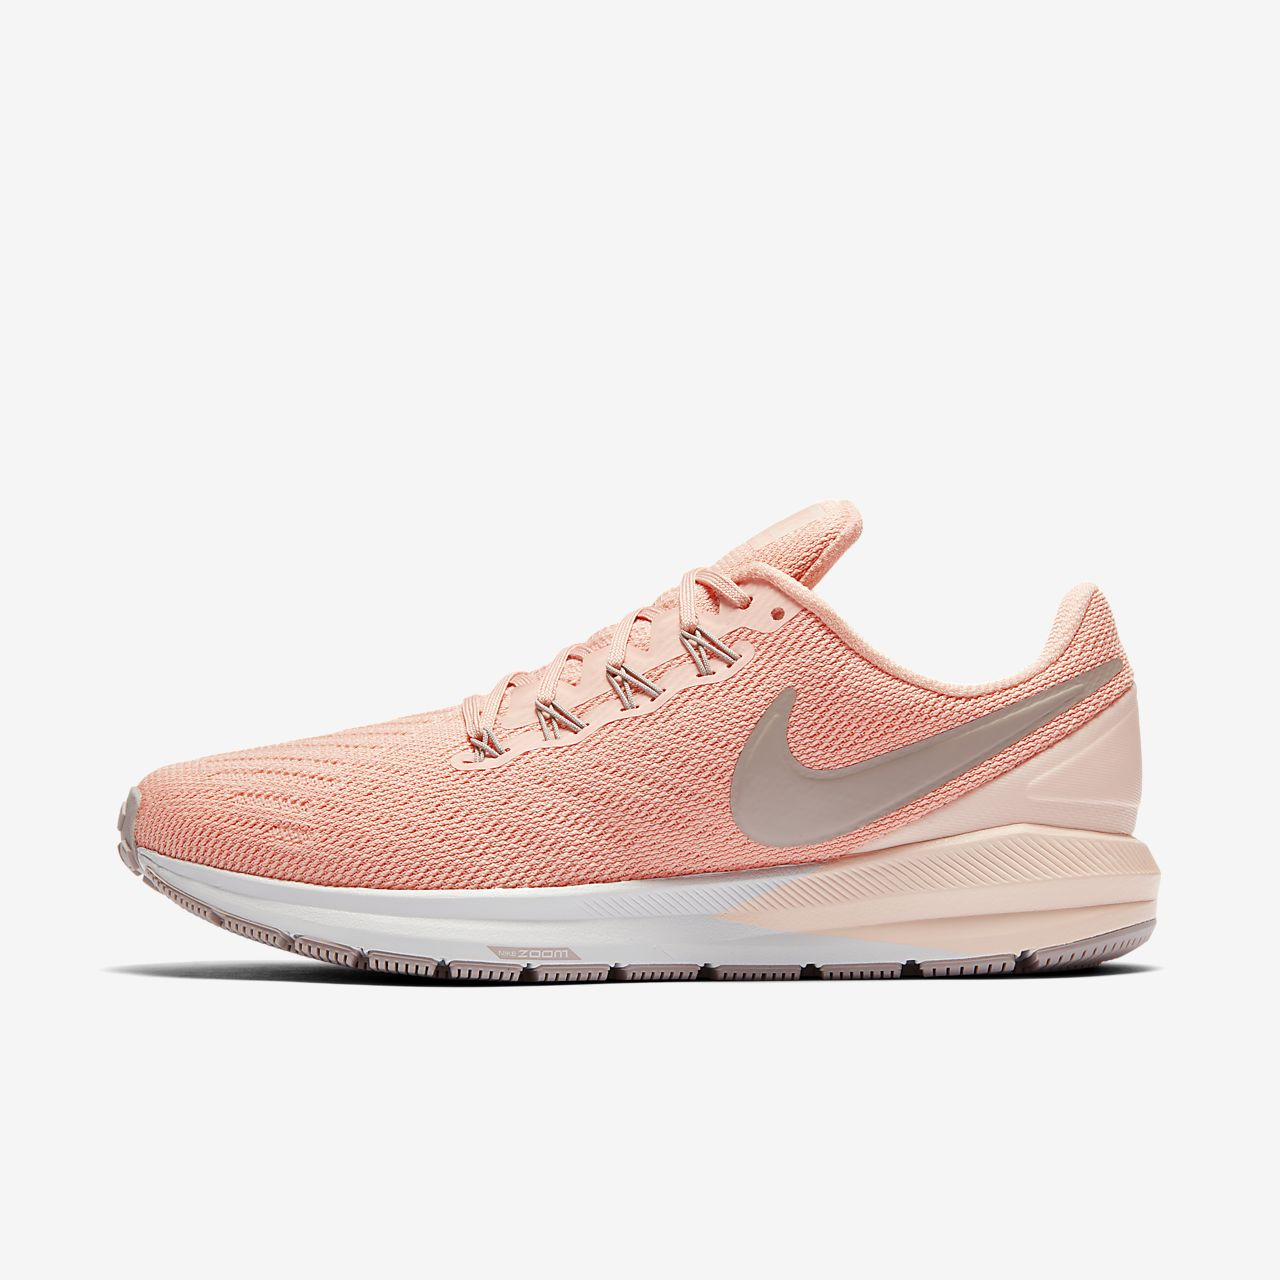 Nike Air Zoom Structure 22 Zapatillas de running - Mujer